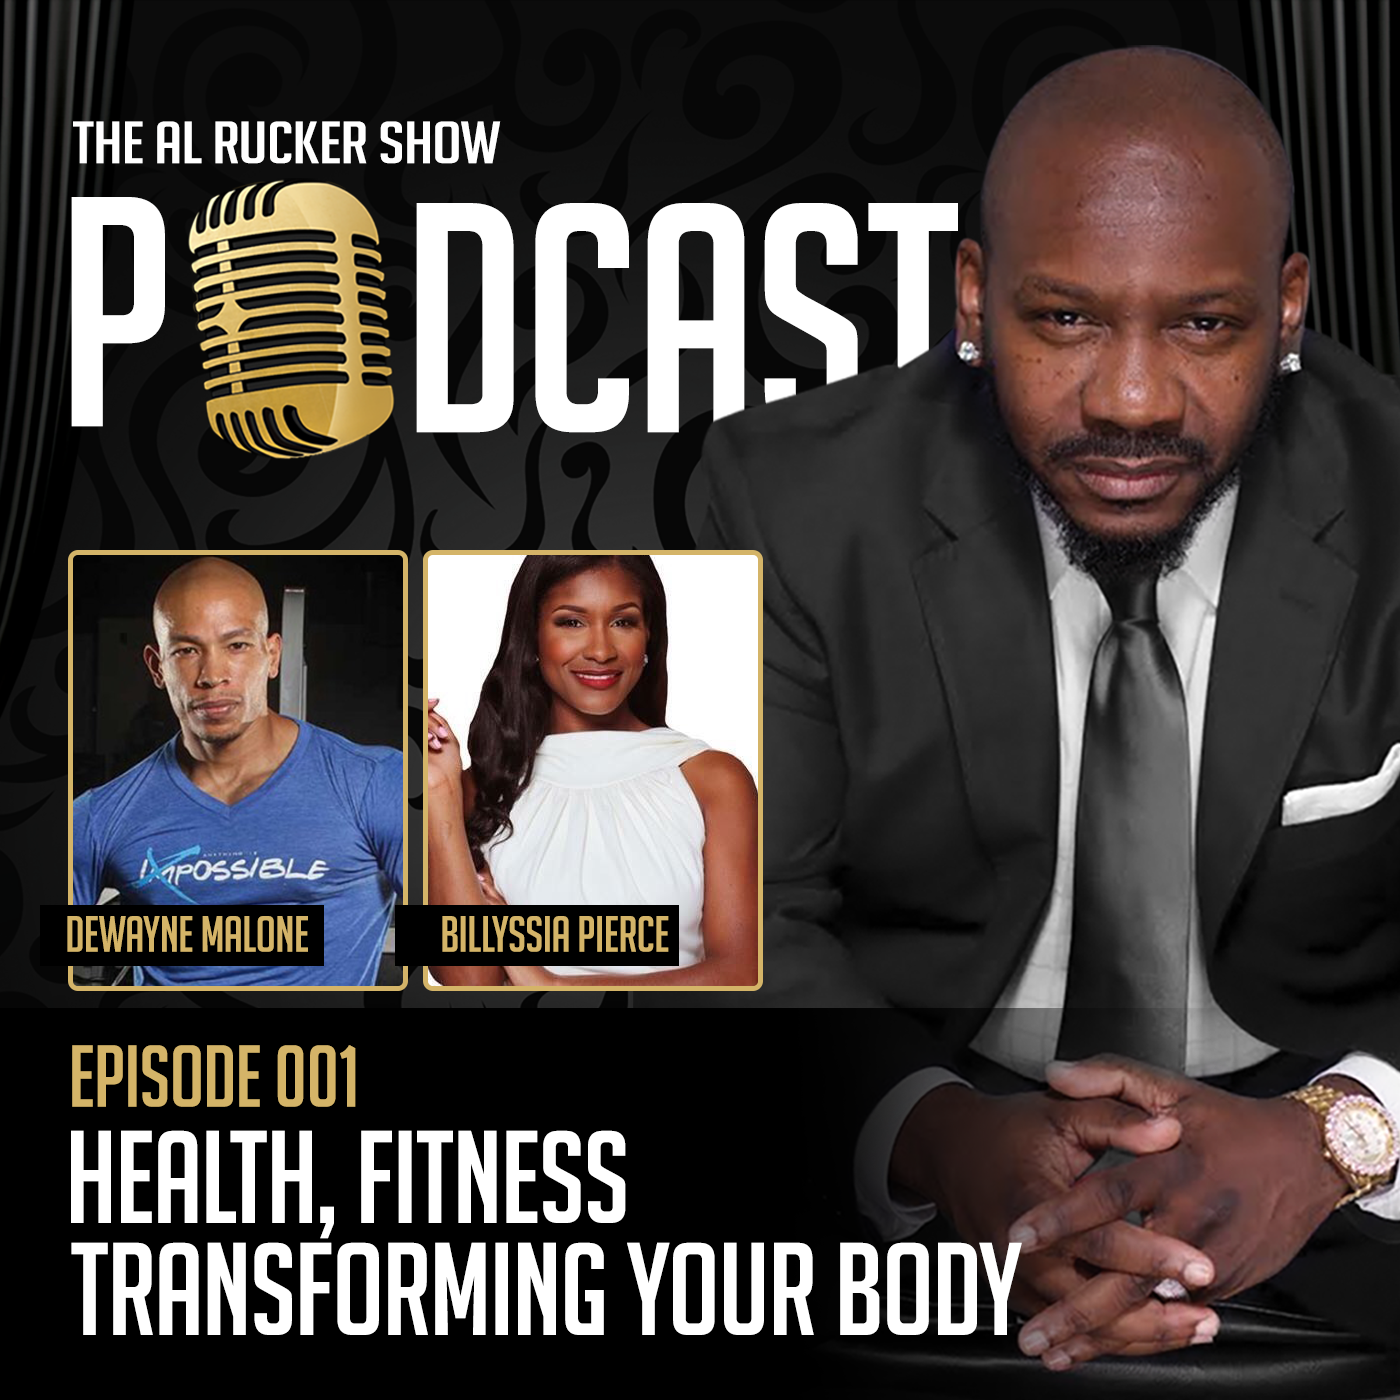 Al Rucker Show Podcast – Health, Fitness – Transforming your body (Episode #001)